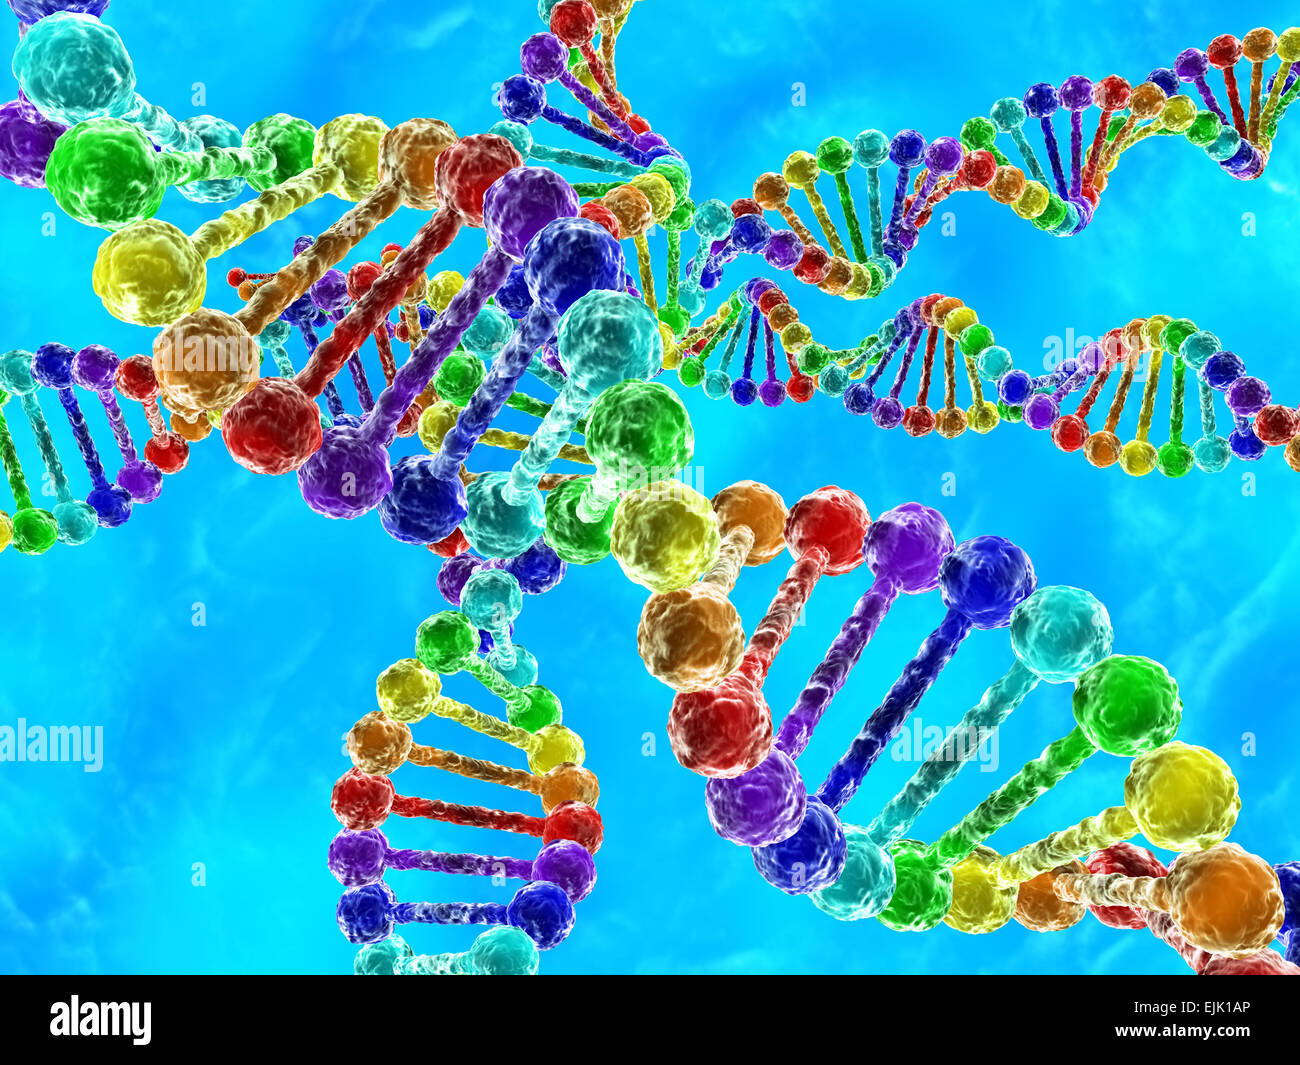 Rainbow DNA (deoxyribonucleic acid) with blue background - Stock Image